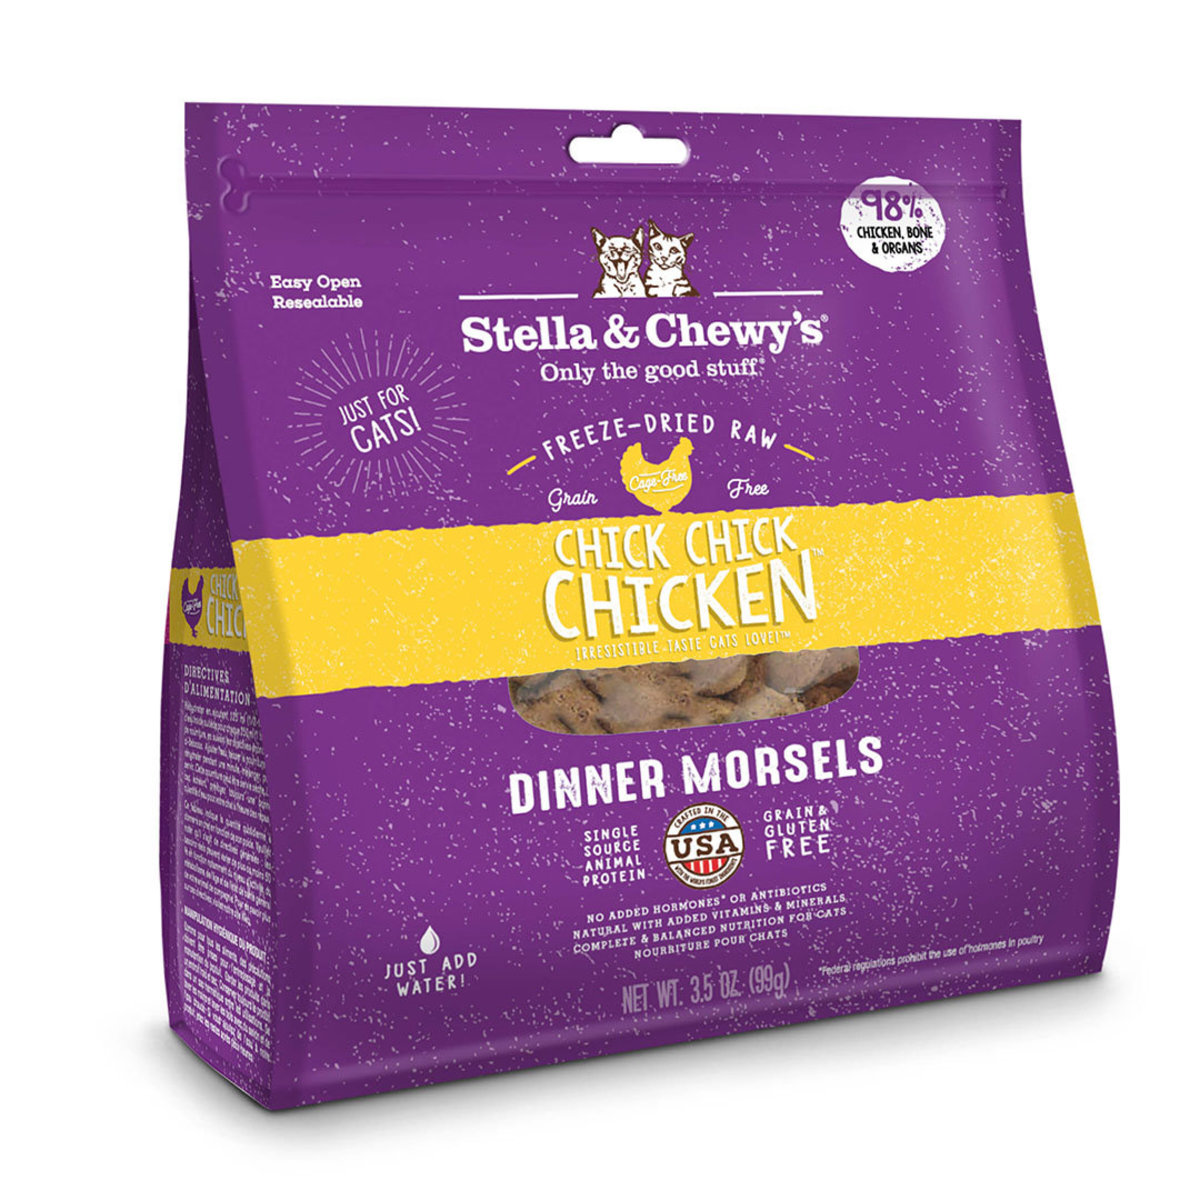 Chick, Chick Chicken Freeze-Dried Raw Dinner Morsels 8oz